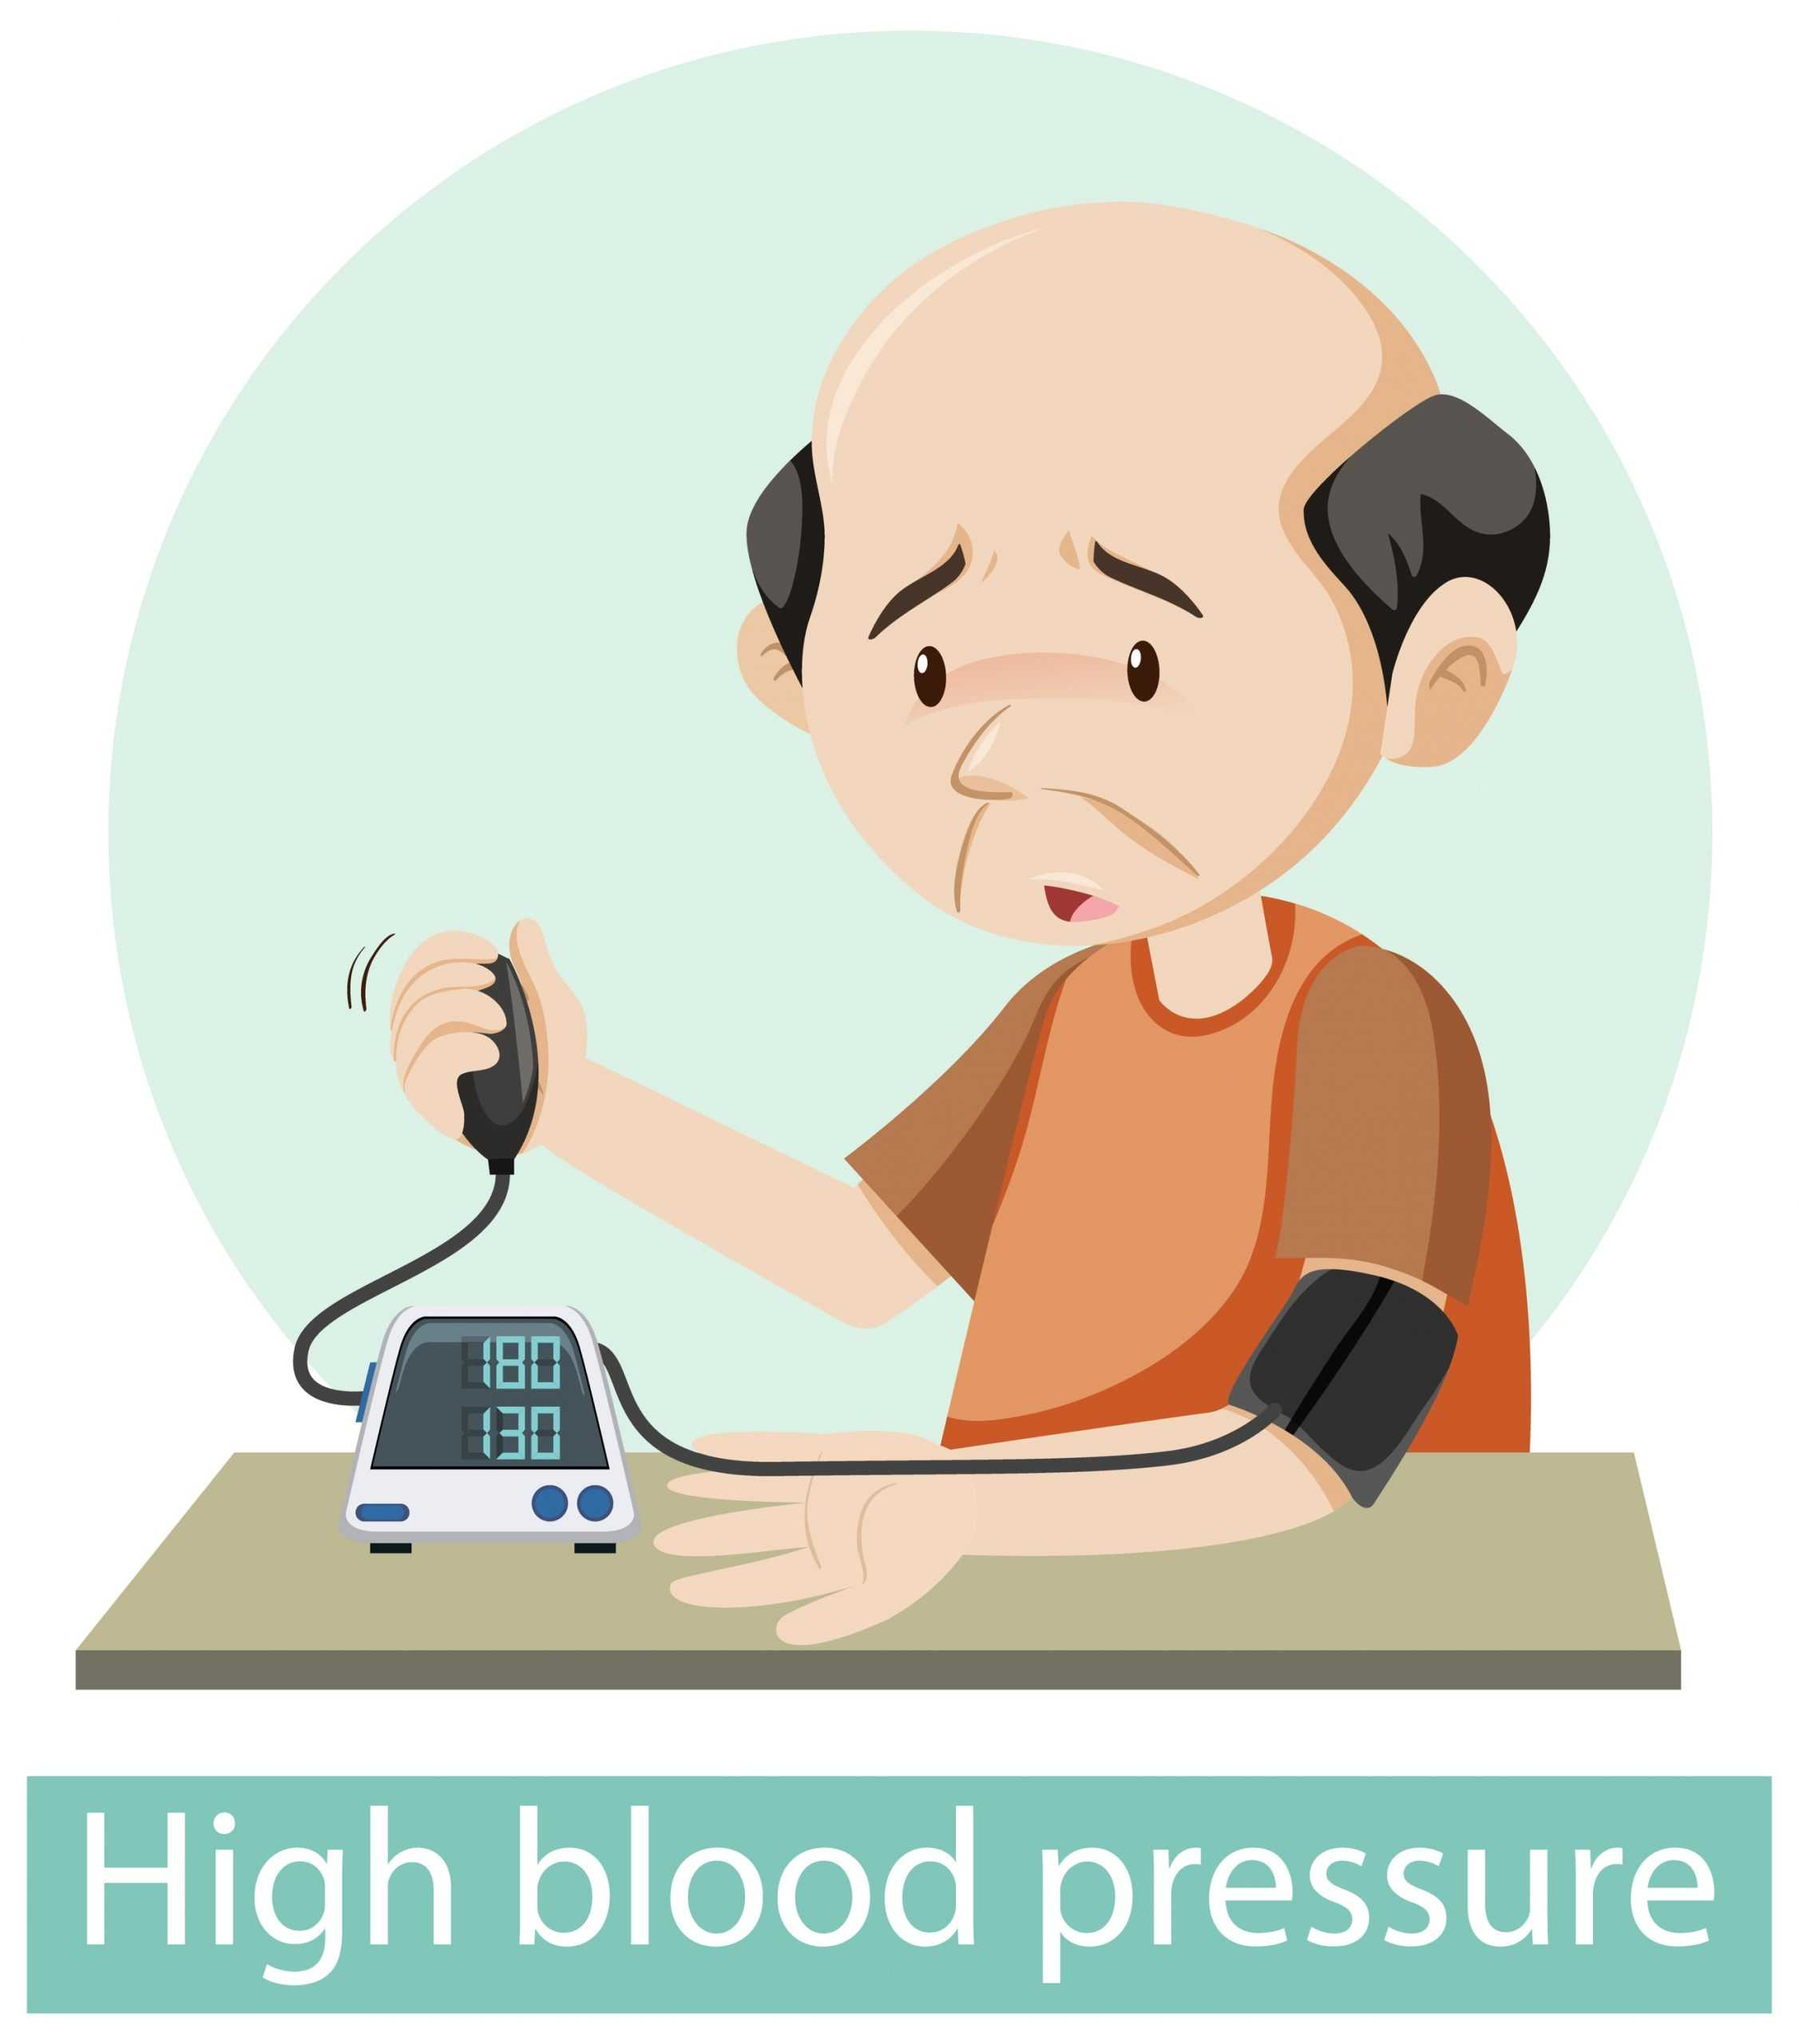 Keto for High Blood Pressure: Benefits of Low Carb Diet for People with High Blood Pressure Bariatric Station